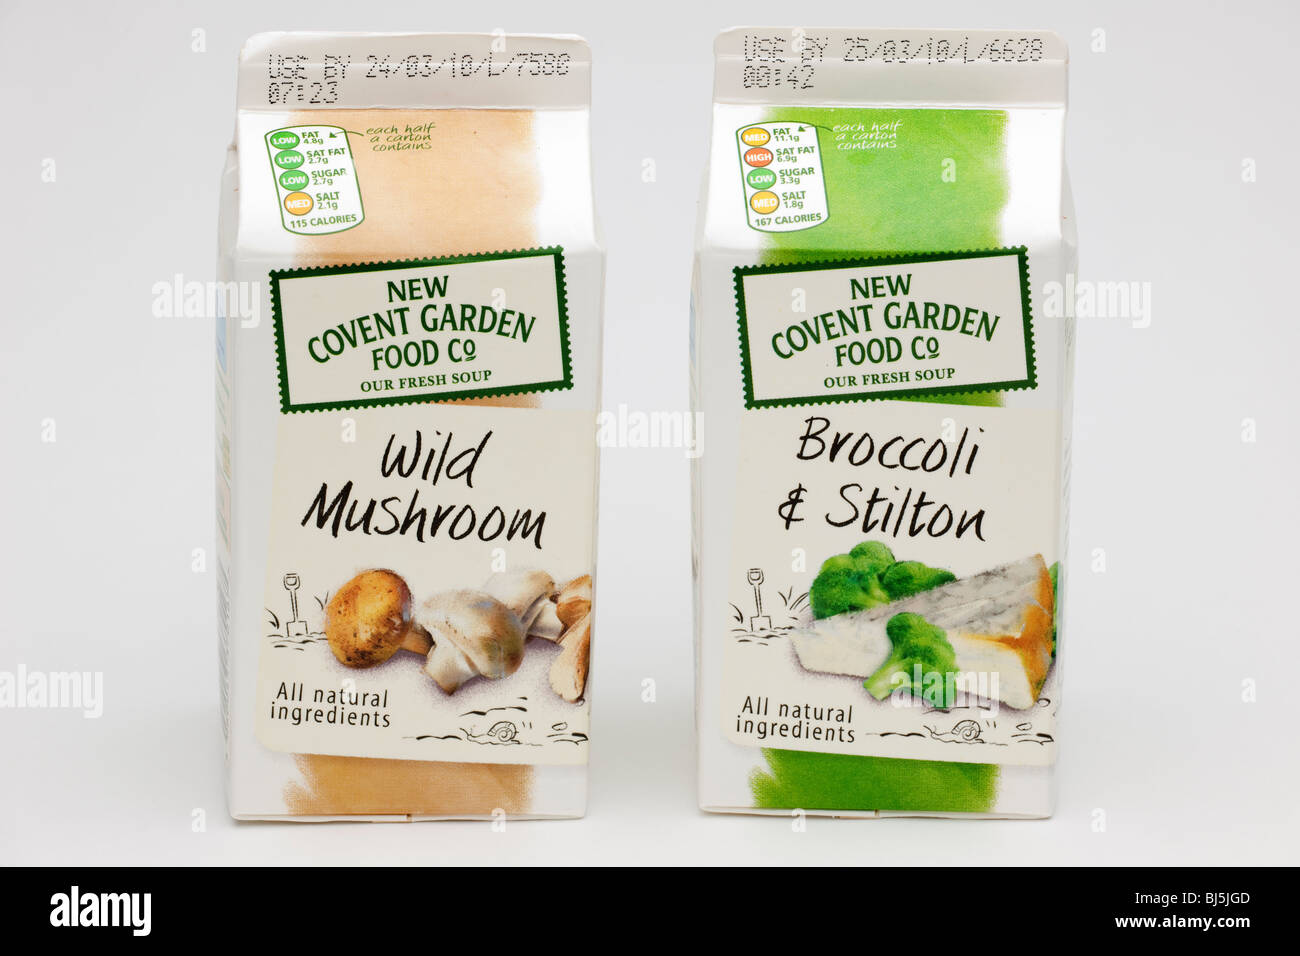 'New Convent Garden food Co' Soups in cartons - Stock Image